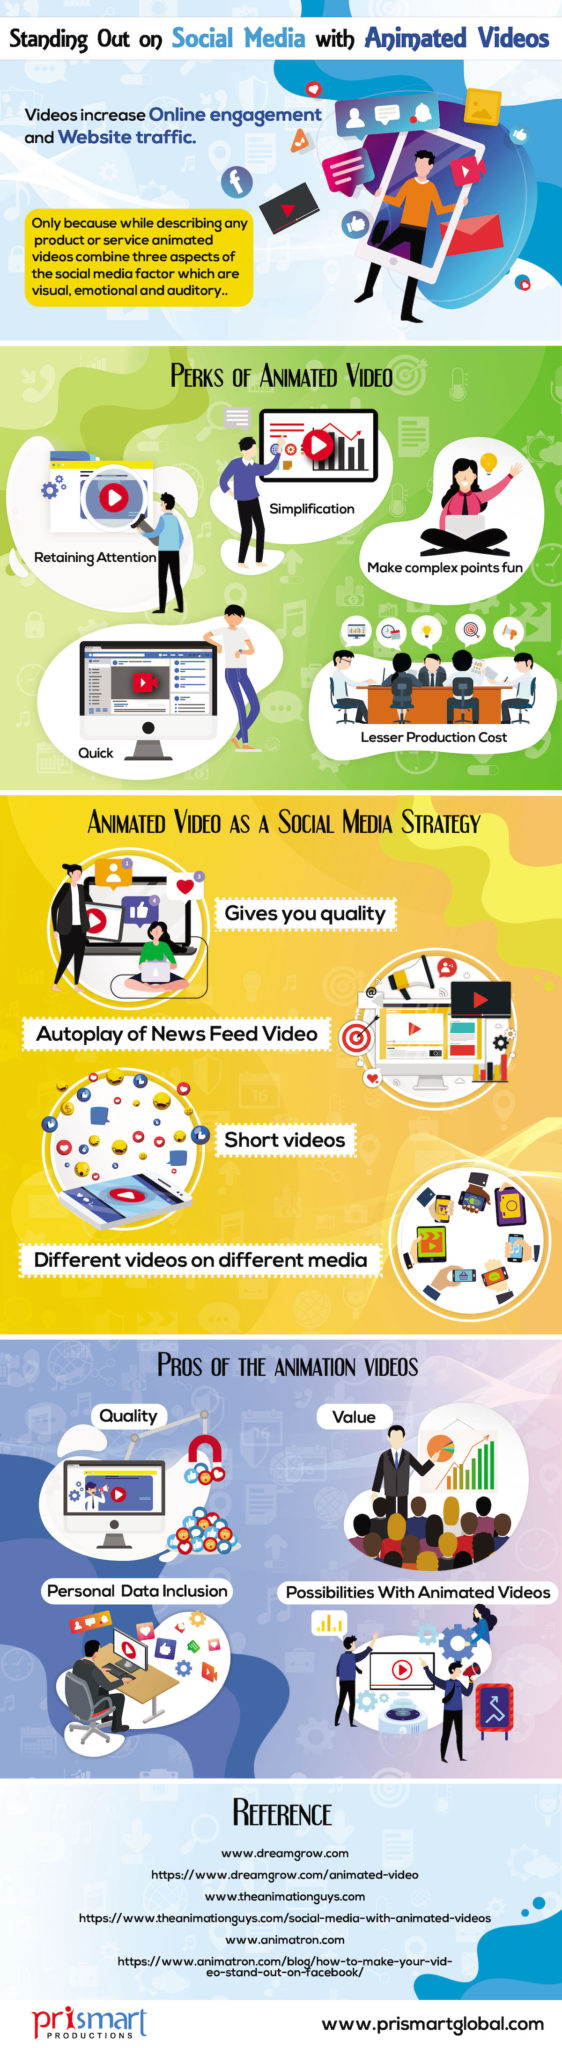 Why you need to consider animated videos in your social media strategy [infographic]